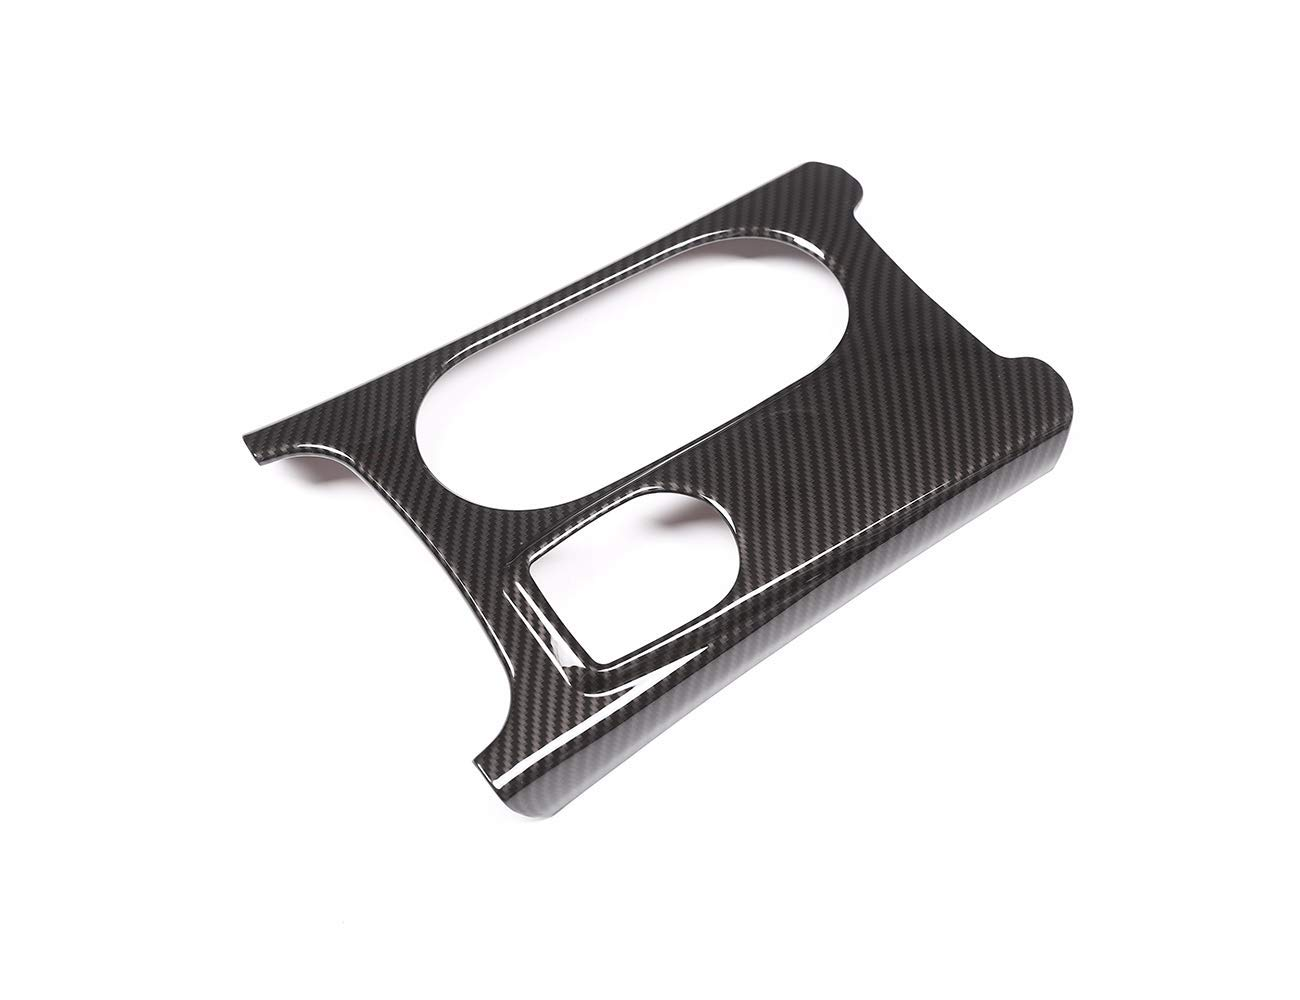 TongSheng Carbon Fiber Water Cup Holder Cover 1pc for Mercedes Benz A//GLA//CLA Class C117 W117 W176 X156 2012-2017